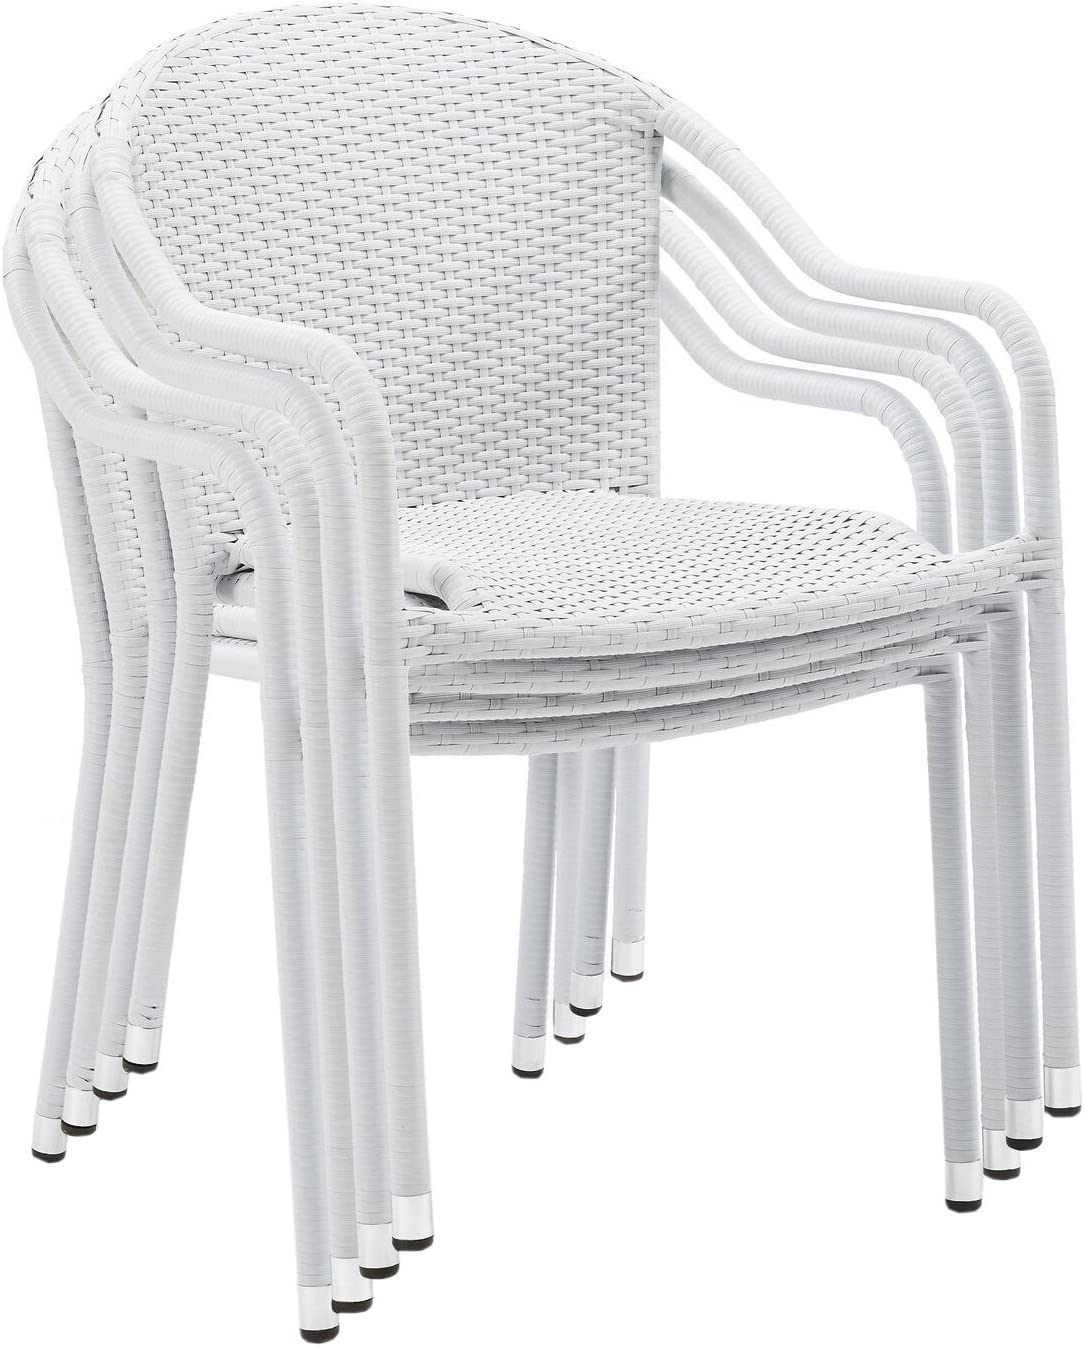 Crosley Furniture CO7109-RE Palm Harbor Outdoor Wicker Stackable Chairs, Set of 4, Red